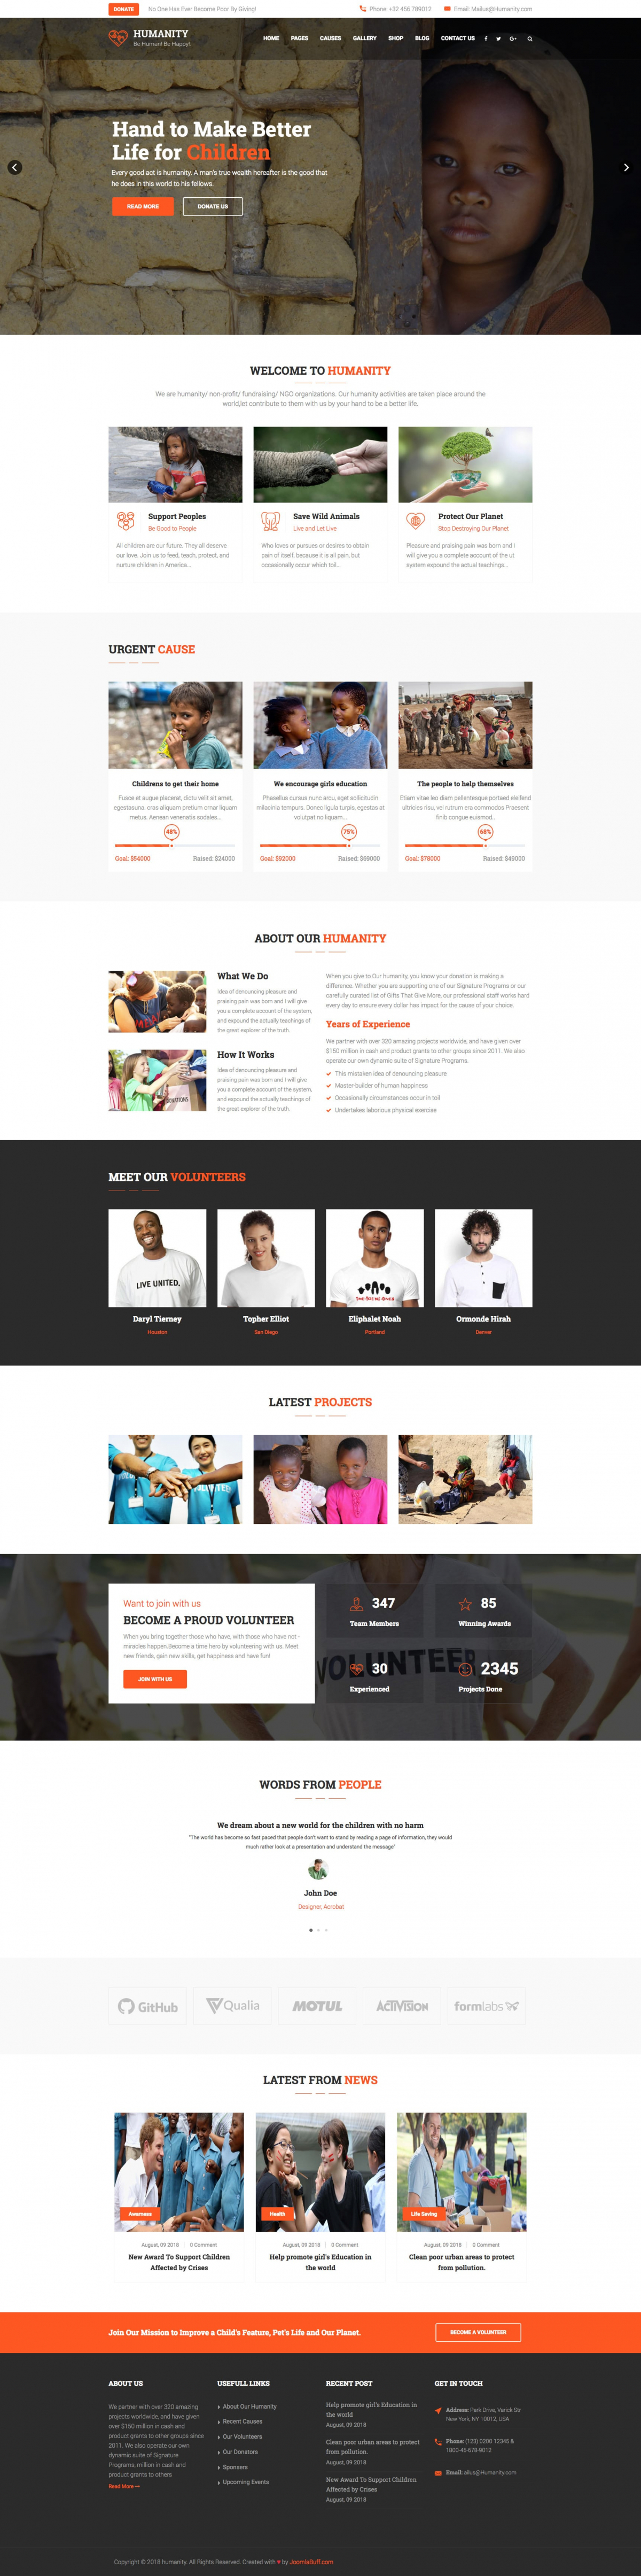 Humanity - Joomla Template for Nonprofit, Charity, NGO Fundraising